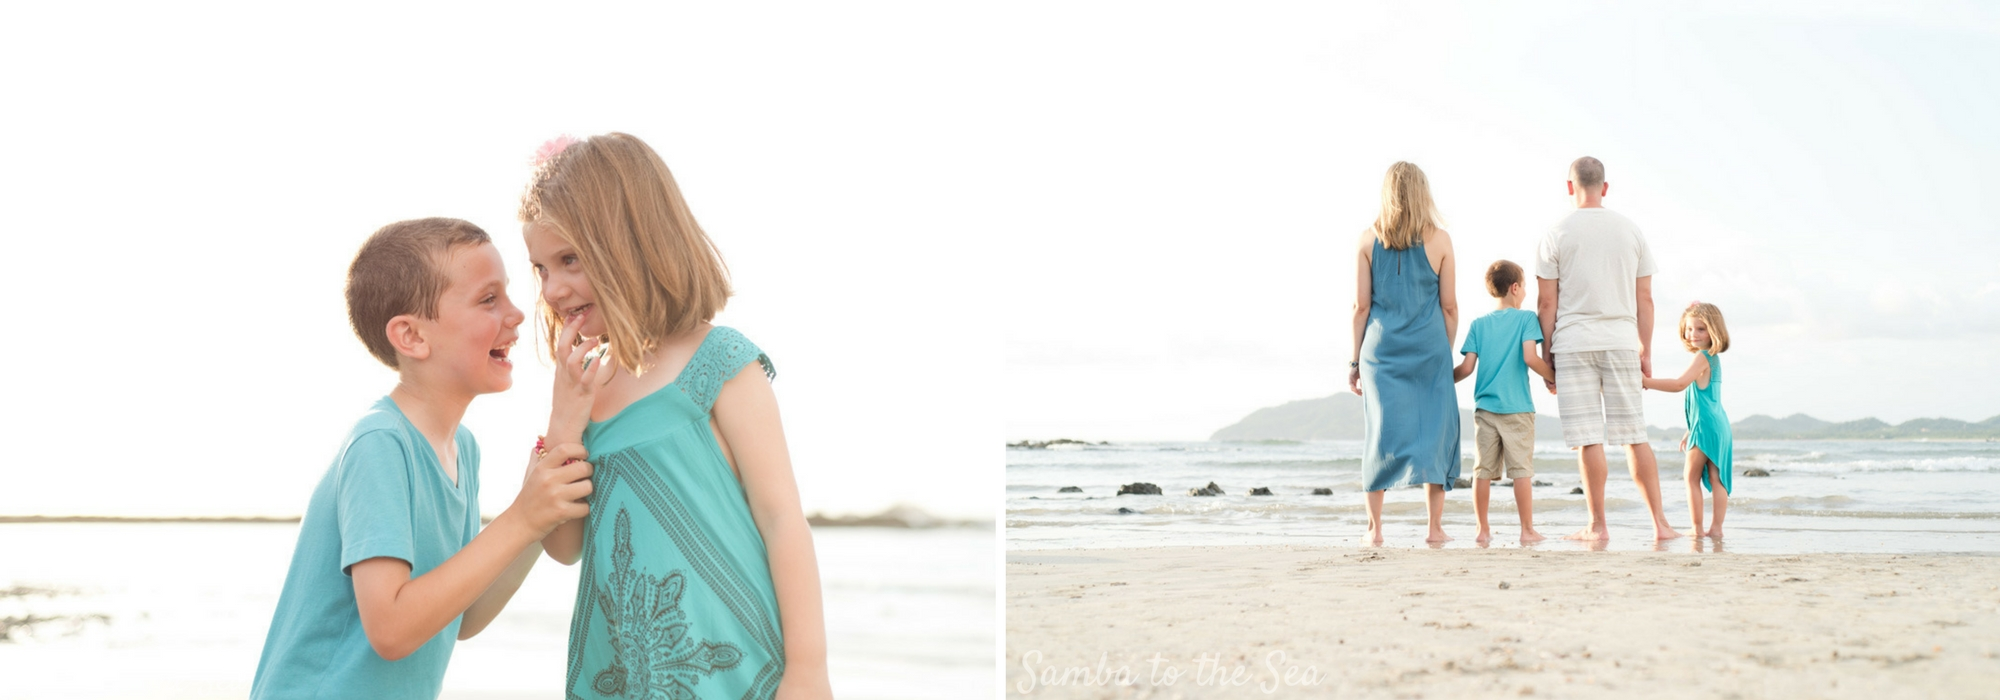 Family Photographer in Tamarindo, Costa Rica. Photographed by Kristen M. Brown, Samba to the Sea Photography.